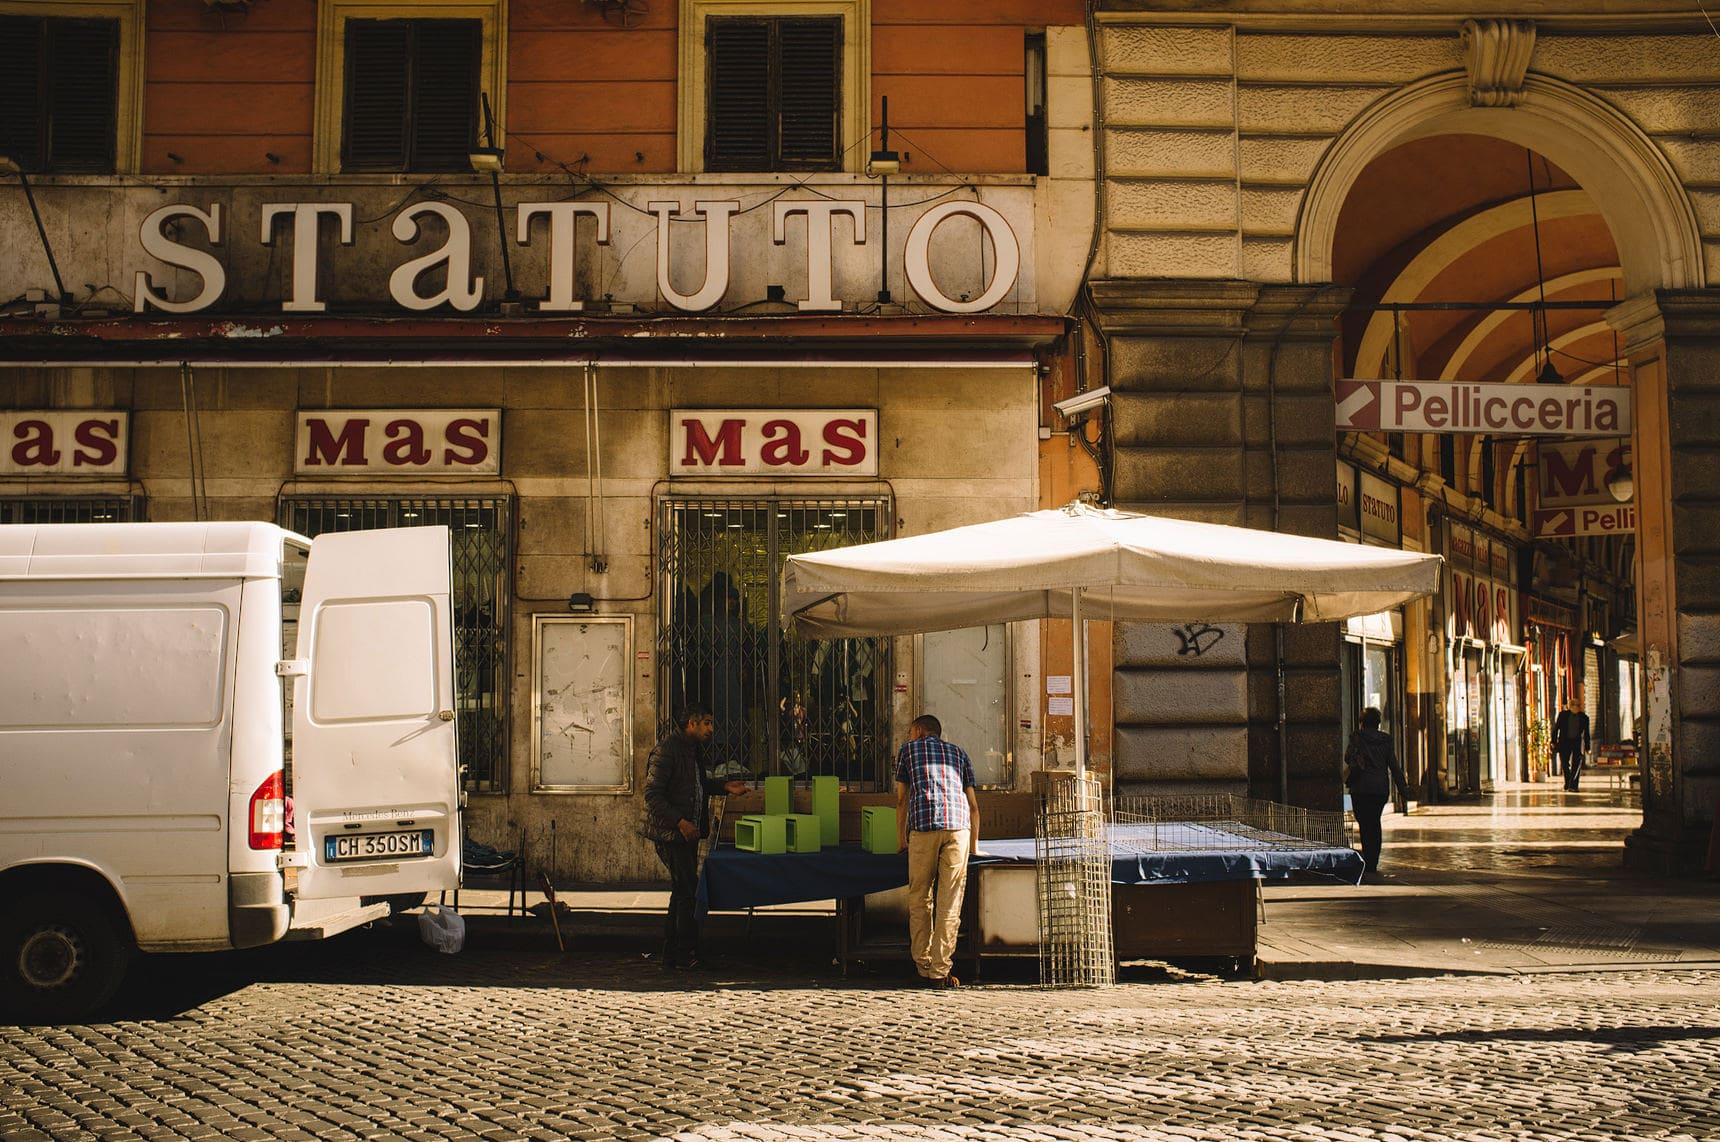 wedding photographer shooting the streets of italy rome